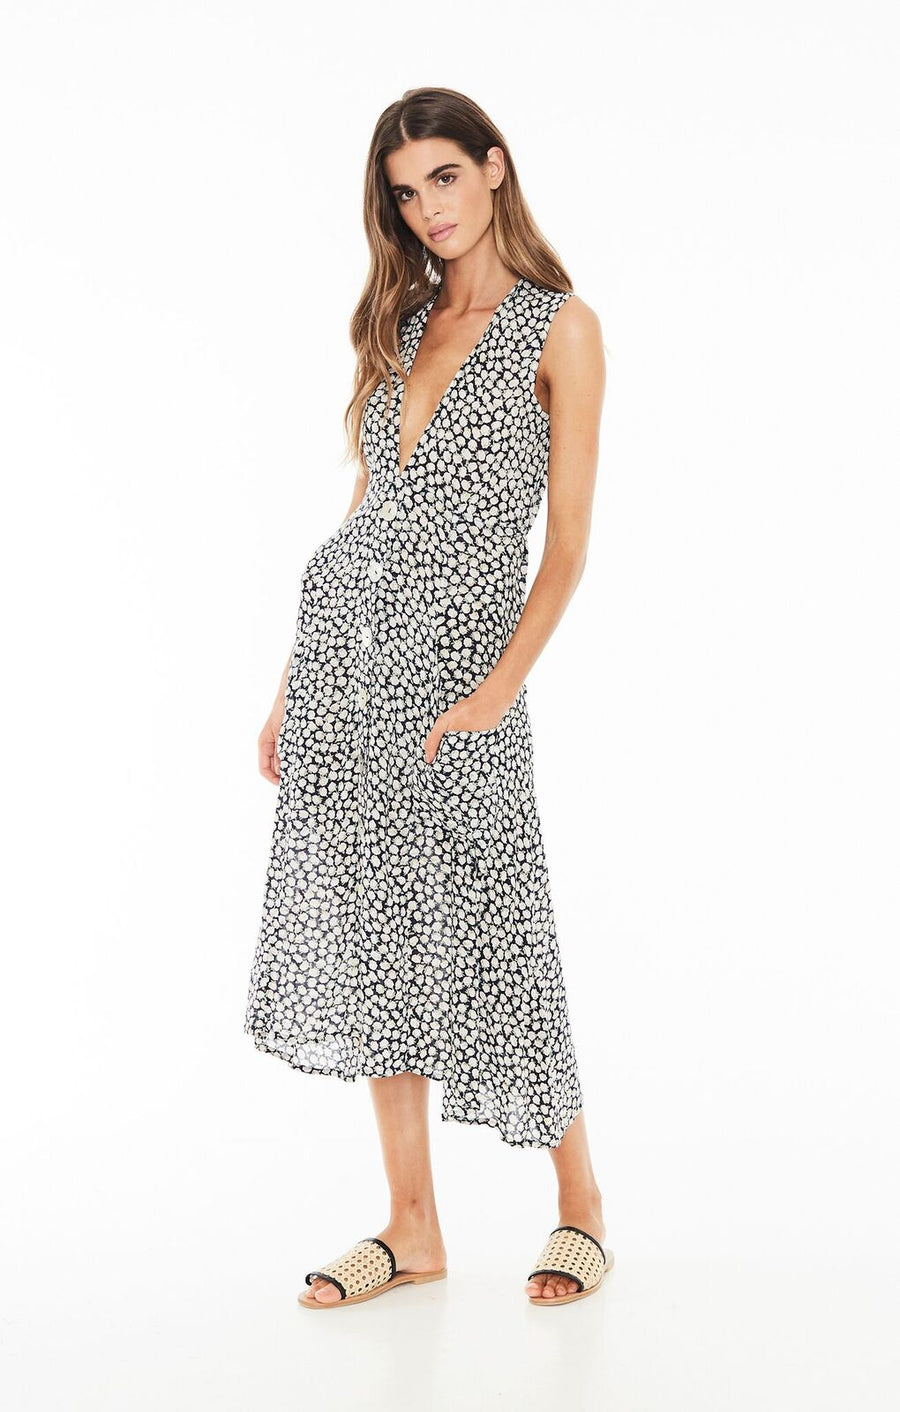 FAITHFULL THE BRAND - Blohm Midi Dress - Azalea Print